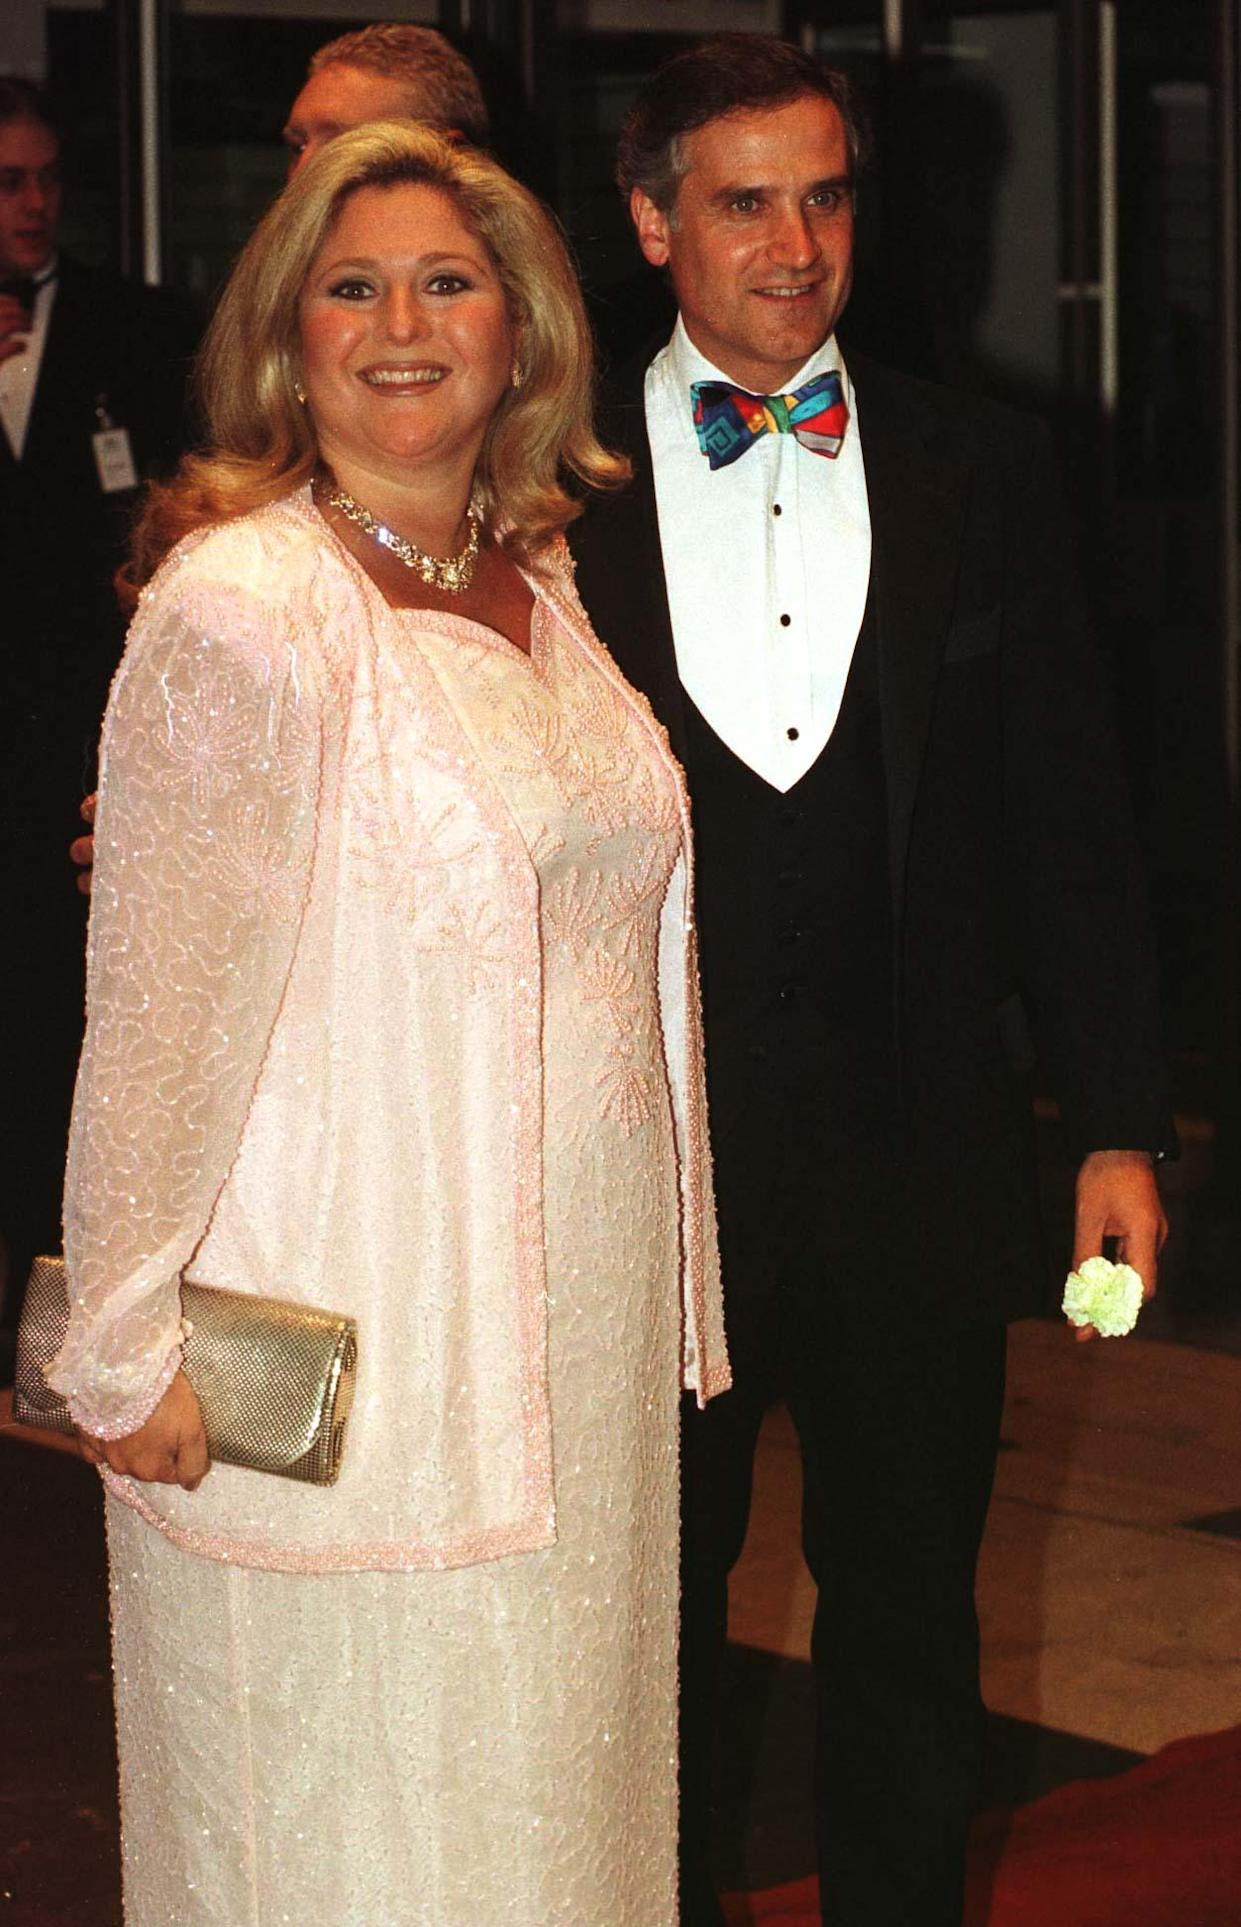 Vanessa Feltz and her husband Michael at the Odeon Leicester Square, London for the movie premiere of